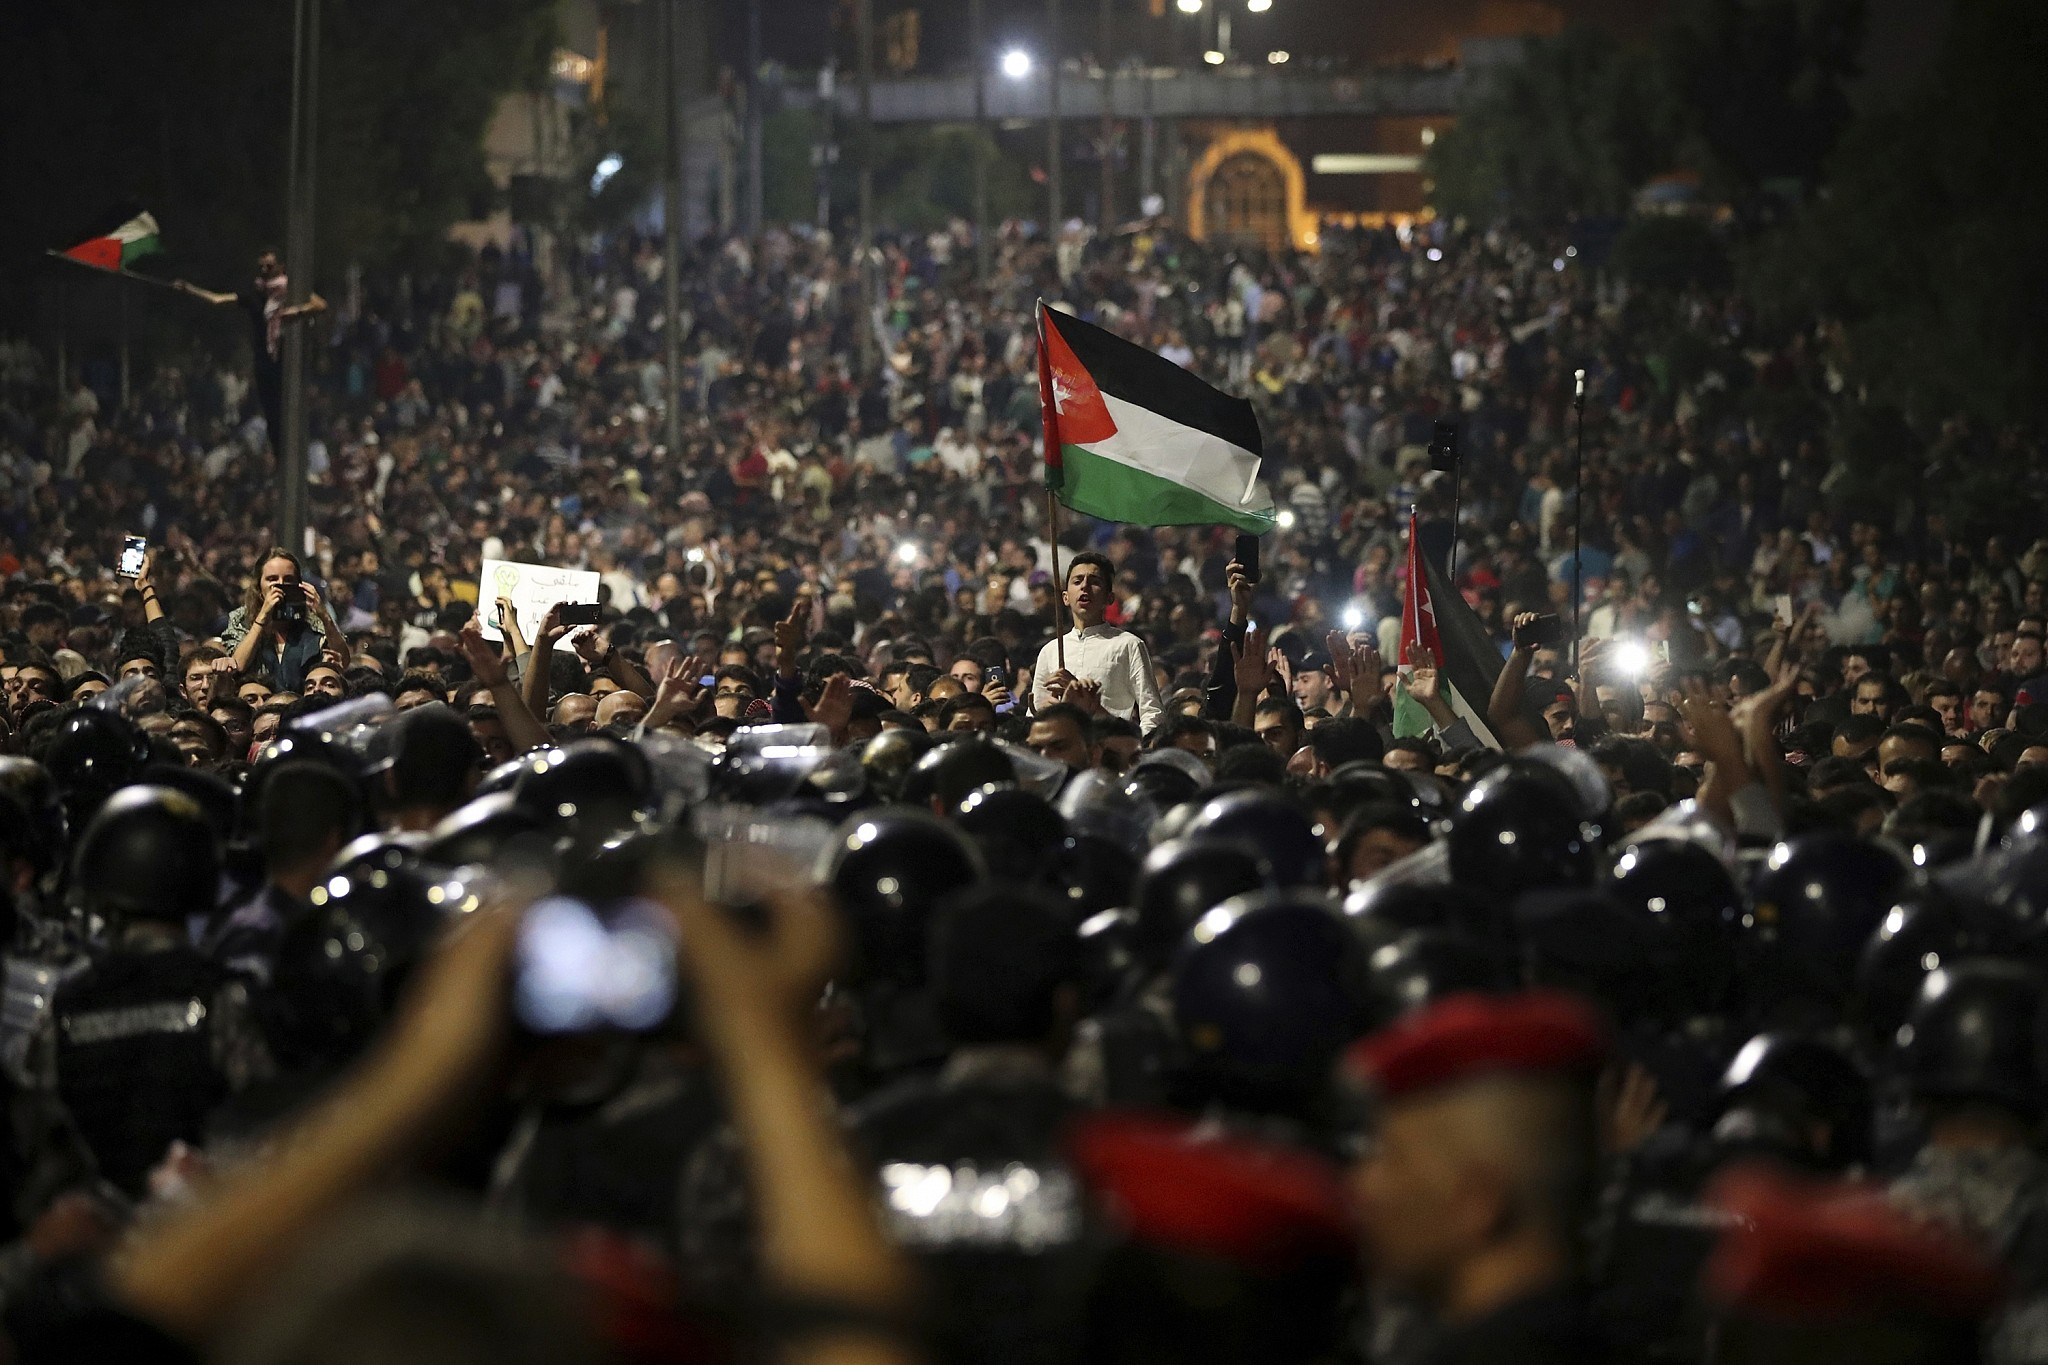 King warns Jordan 'at crossroads' over economic protests